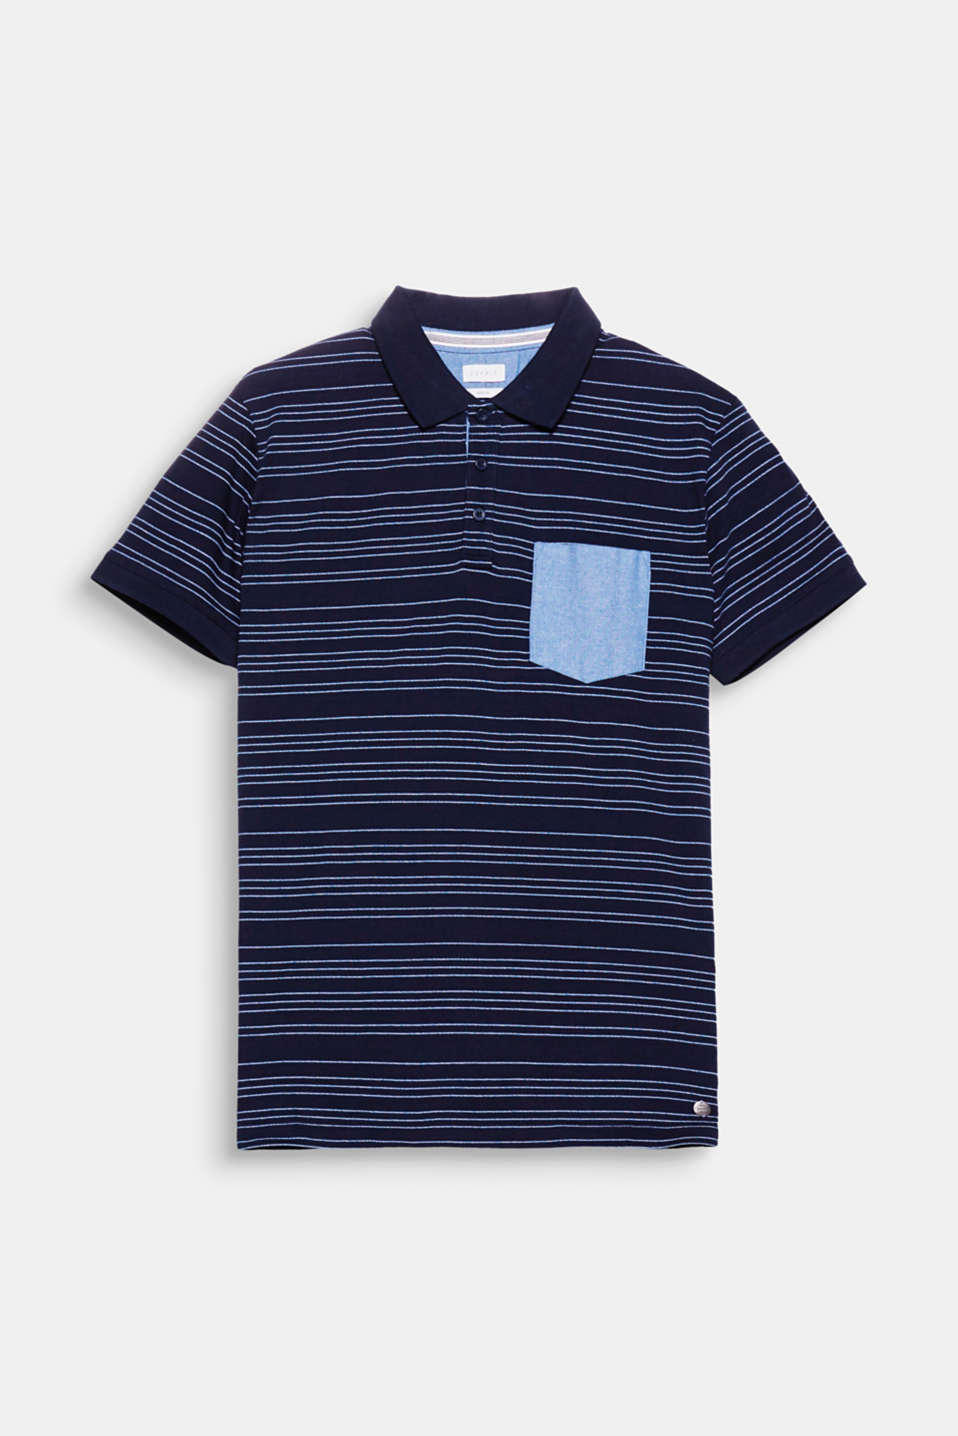 The stripes and the breast pocket are the two details which define this pure cotton polo shirt.